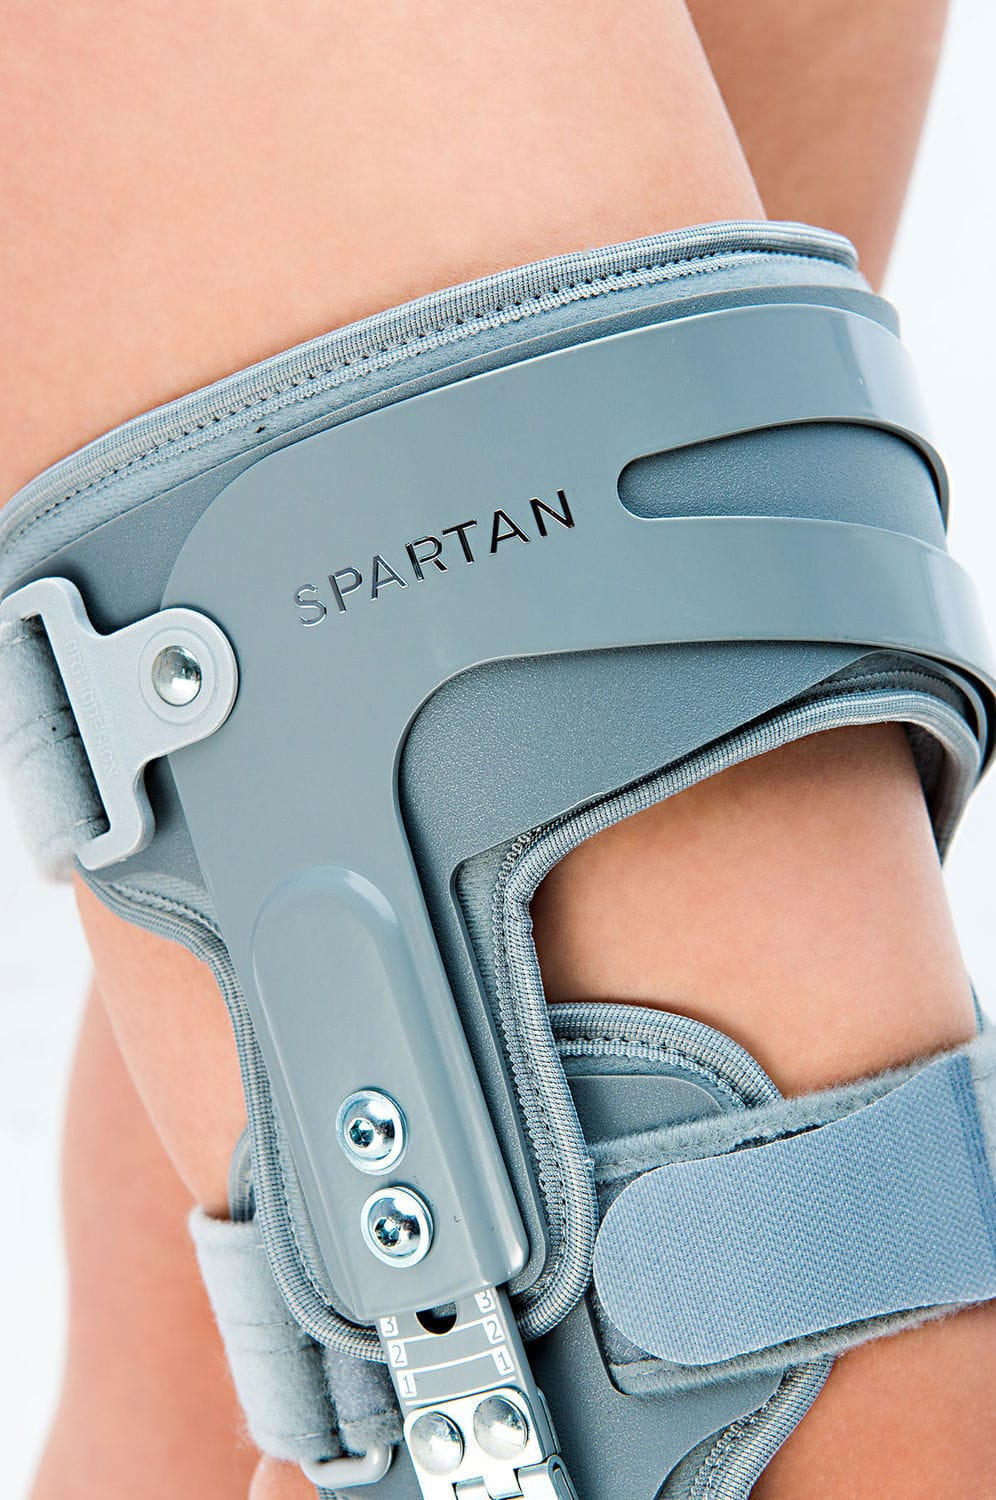 b437bcdacc Knee orthosis / knee extension / articulated - SPARTAN - Reh4Mat